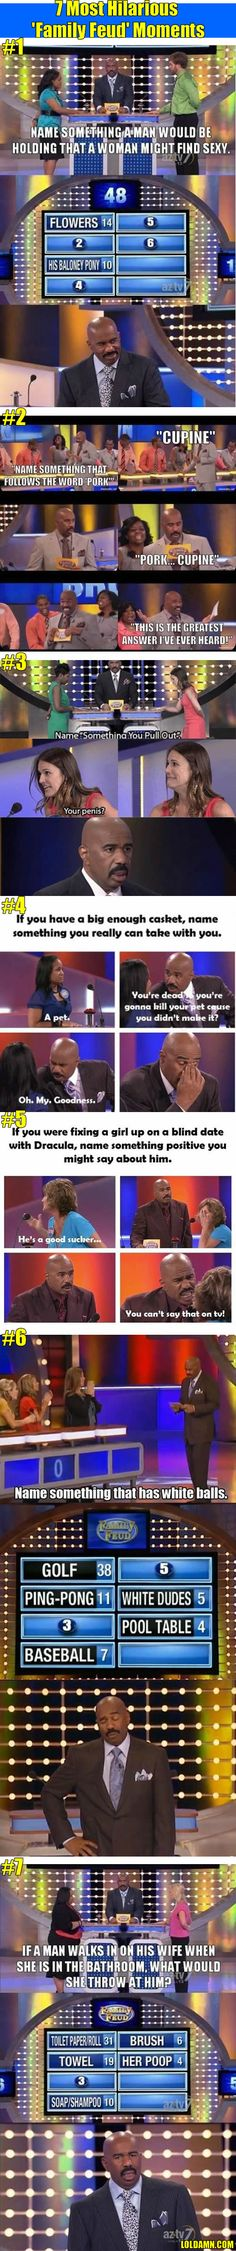 7 Most Hilarious 'Family Feud' Moments.